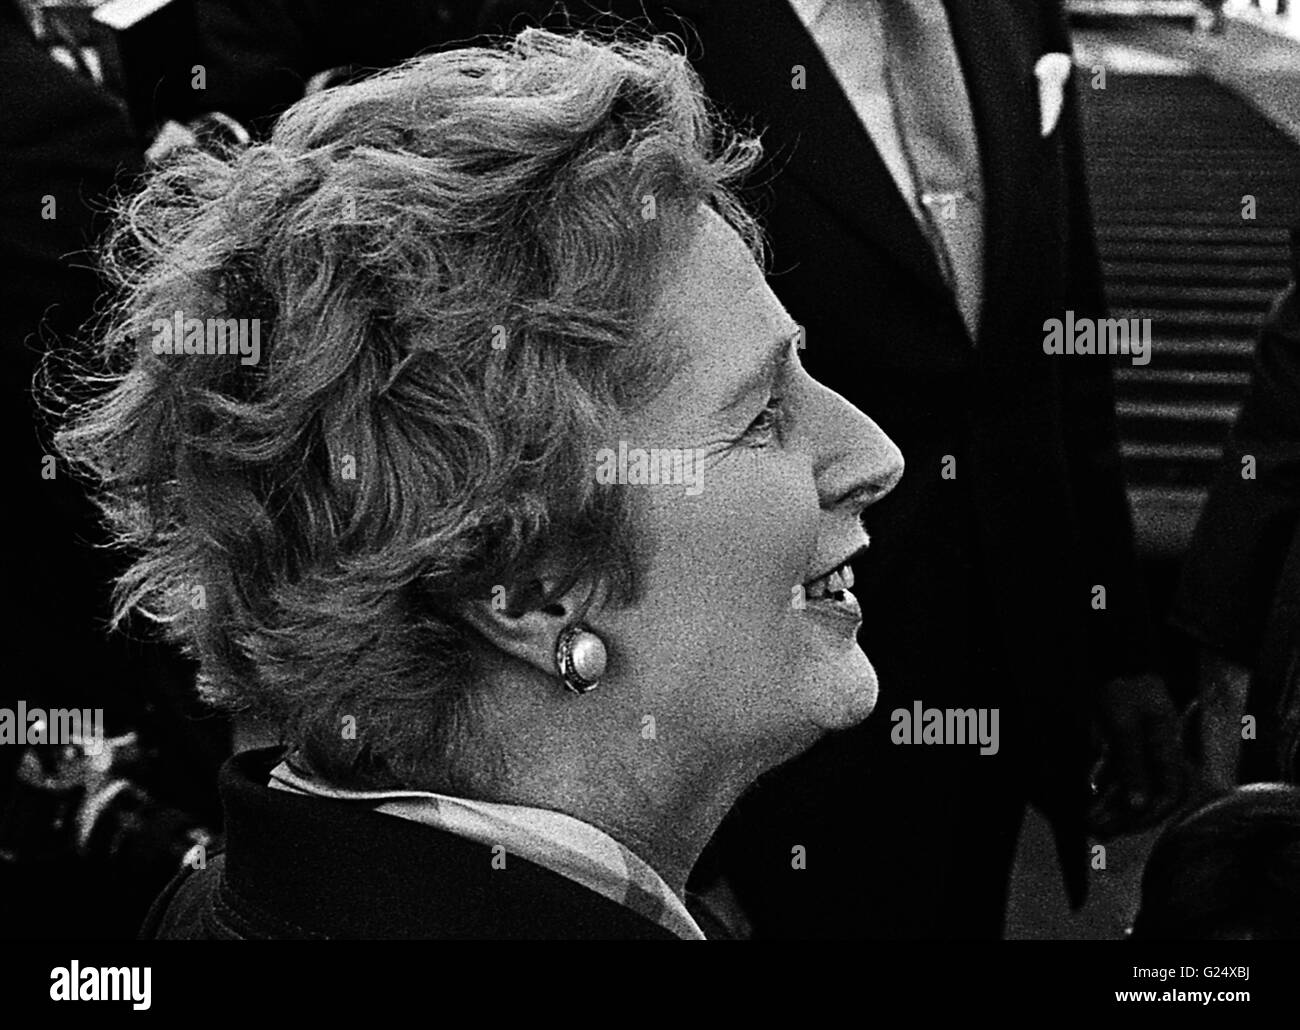 AJAXNETPHOTO. 11TH FEB, 1977. PORTSMOUTH, ENGLAND. LEADER OF THE OPPOSITION MP MARGARET THATCHER ON A TOUR OF THE - Stock Image